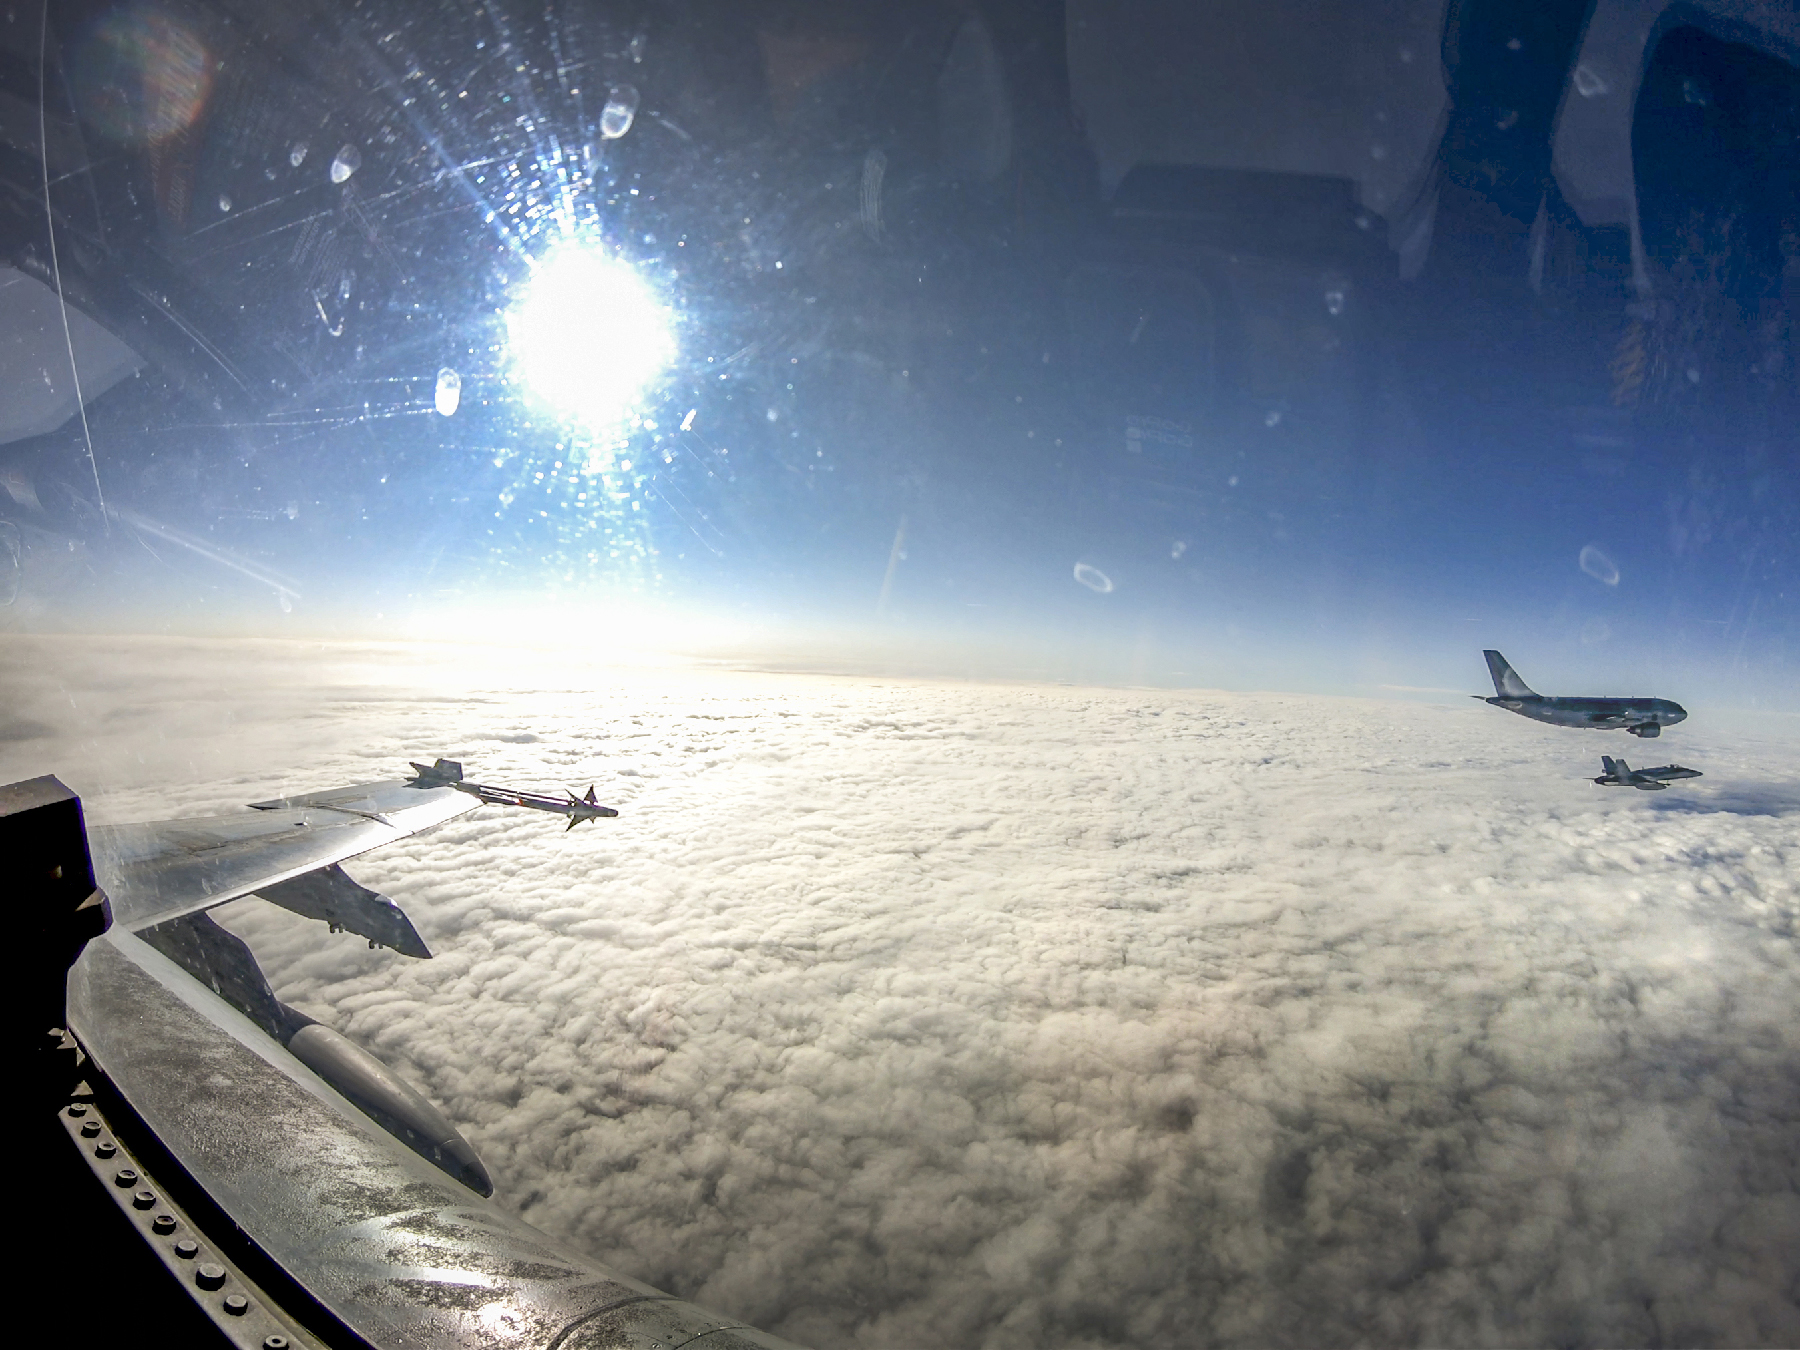 Three aircraft fly in formation in a blue sky under a bright sun above the cloud cover.